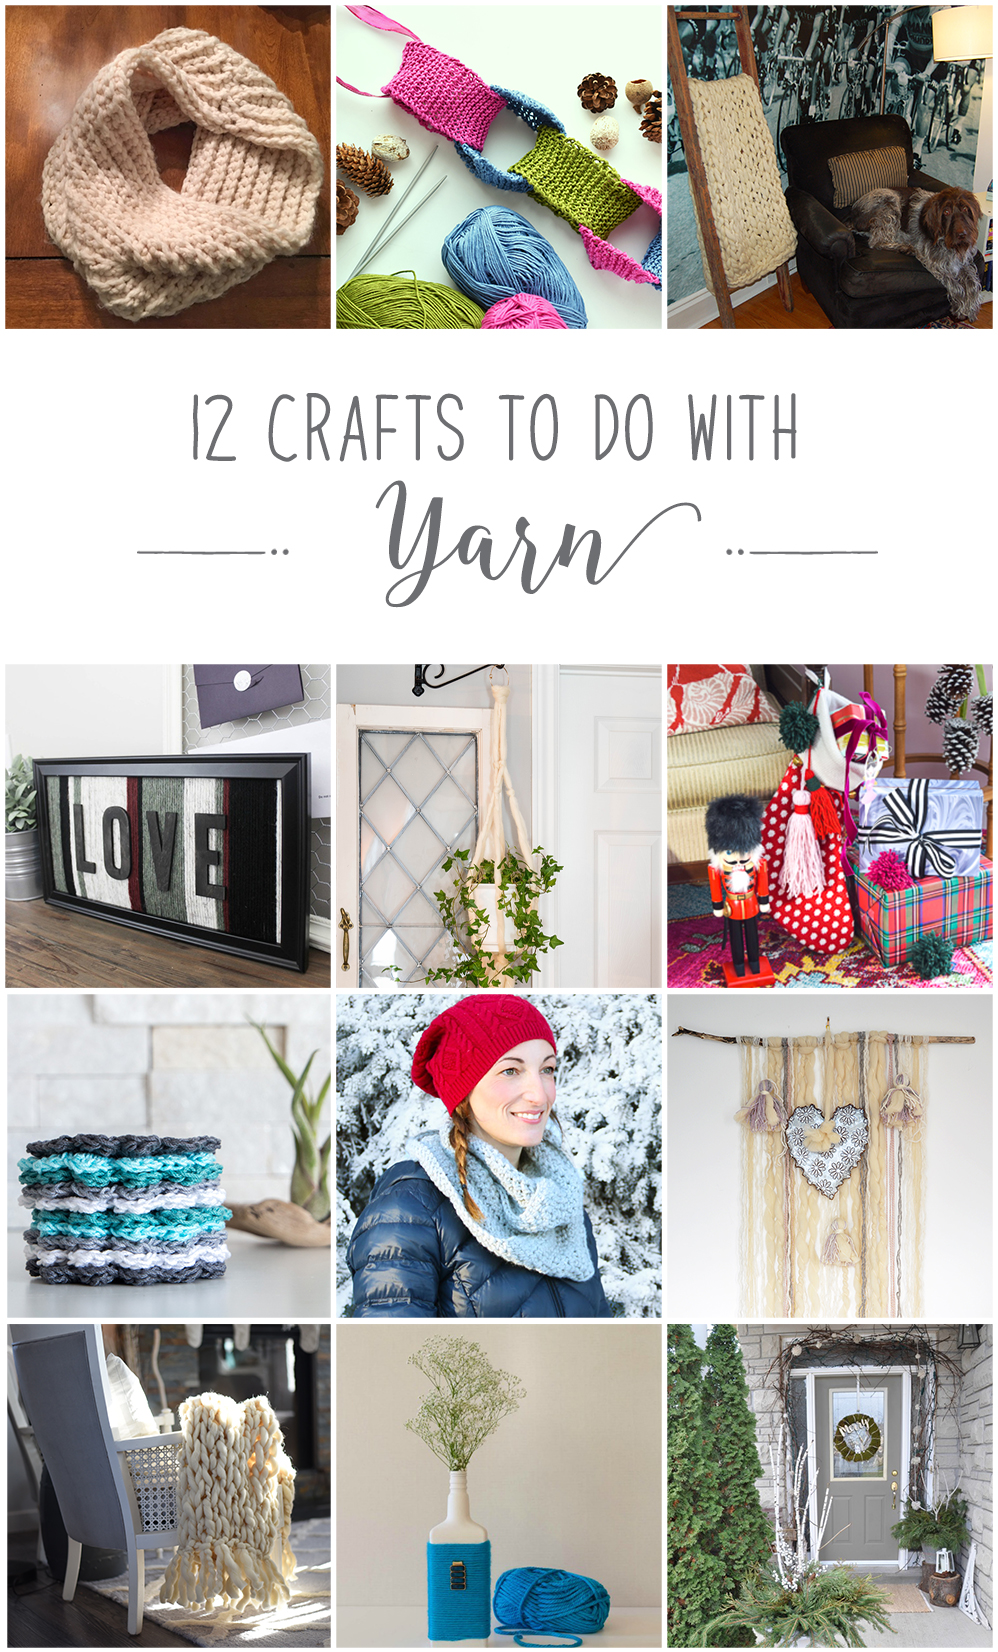 12MonthsofDIY-December-Yarn-DIY-Craft-Ideas.jpg